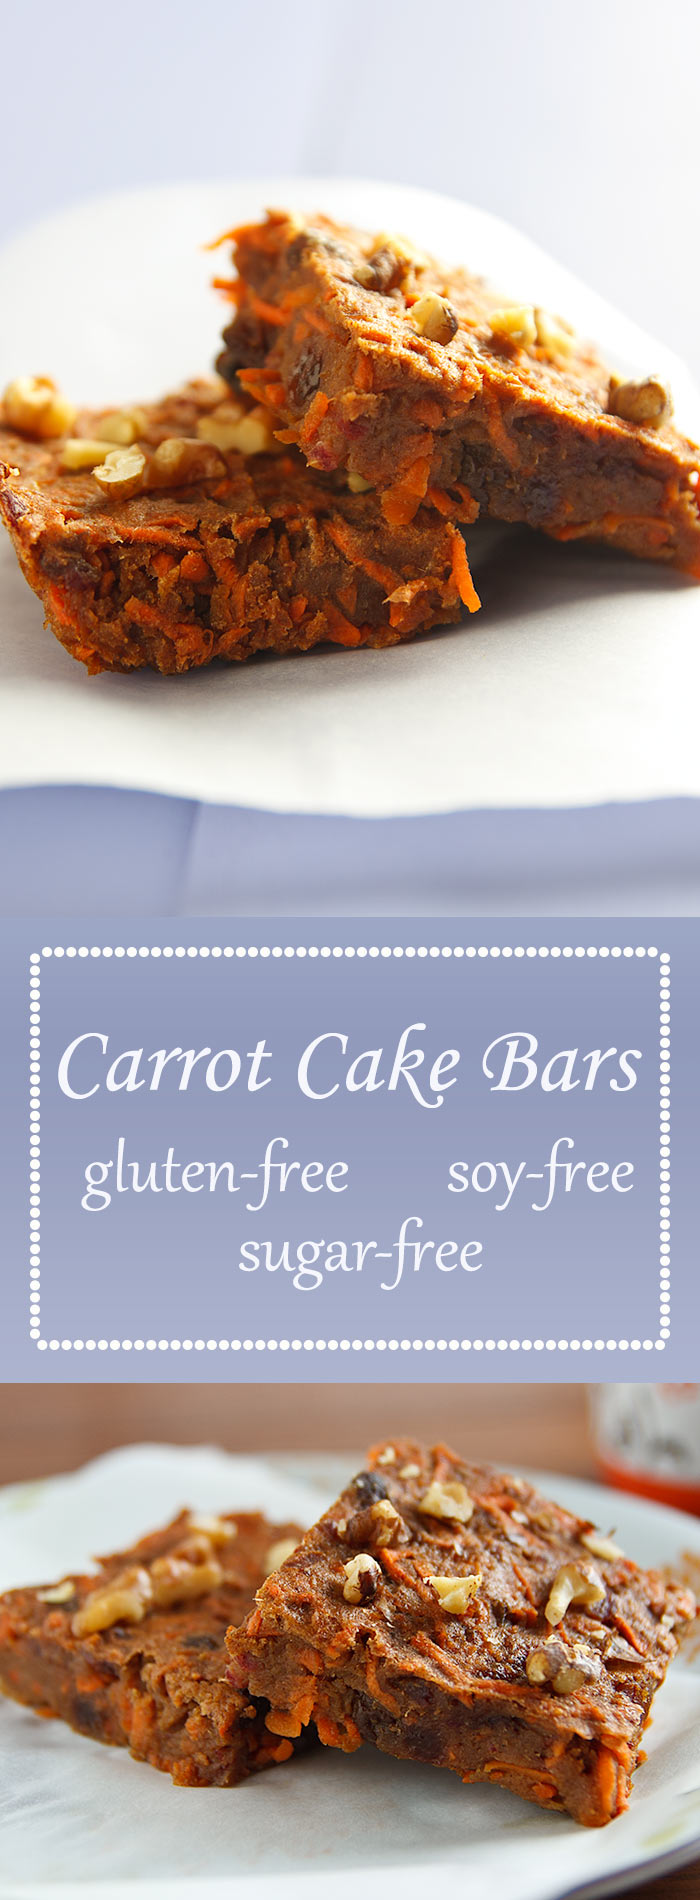 Dense and chewy, these date-sweetened, vegan carrot cake bars are packed with spicy flavor. Plus they're soy and gluten-free.